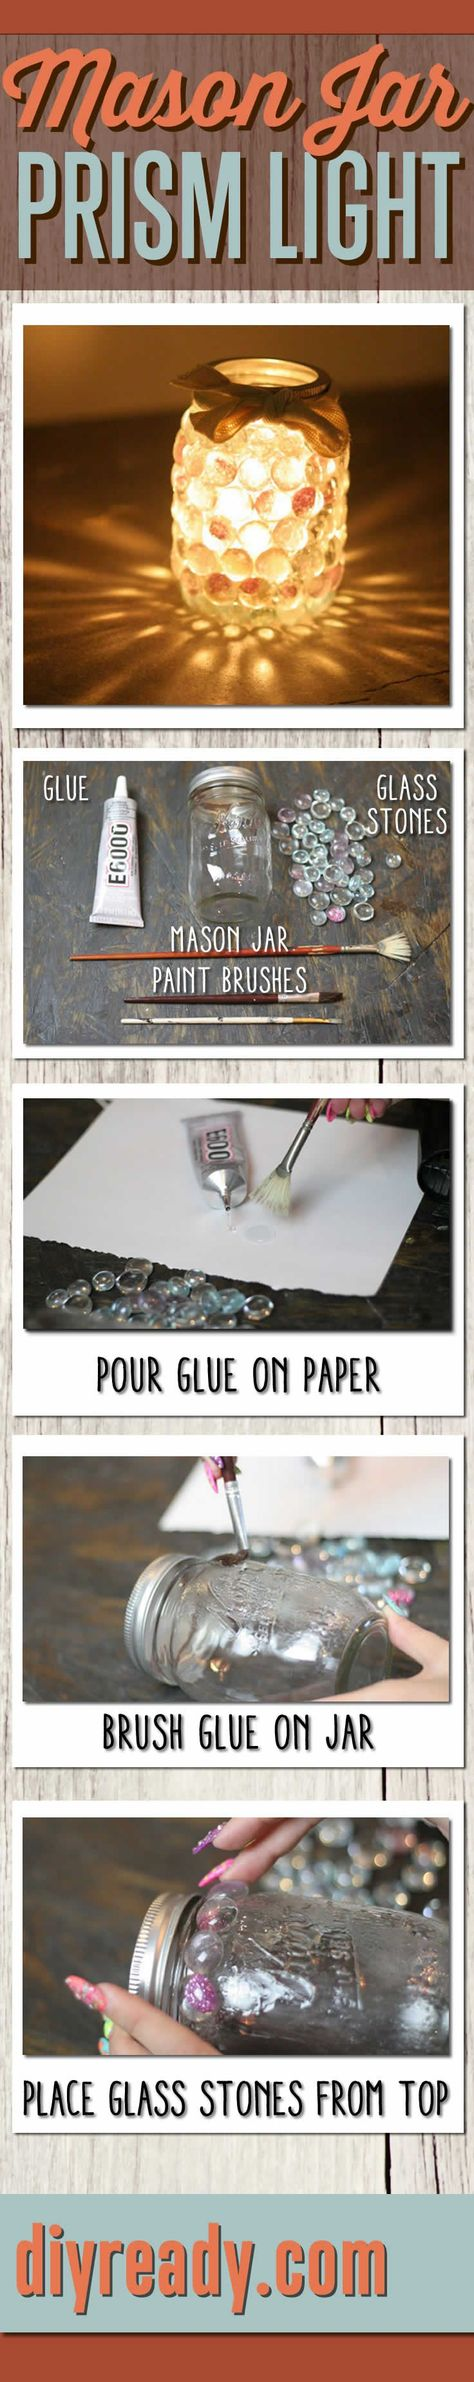 Mason Jar Dollar Store Craft Idea | How To Make An Easy DIY Prism Light! Cool Gift Ideas For Your Friends By DIY Ready http://diyready.com/mason-jar-crafts-prism-candle-light/